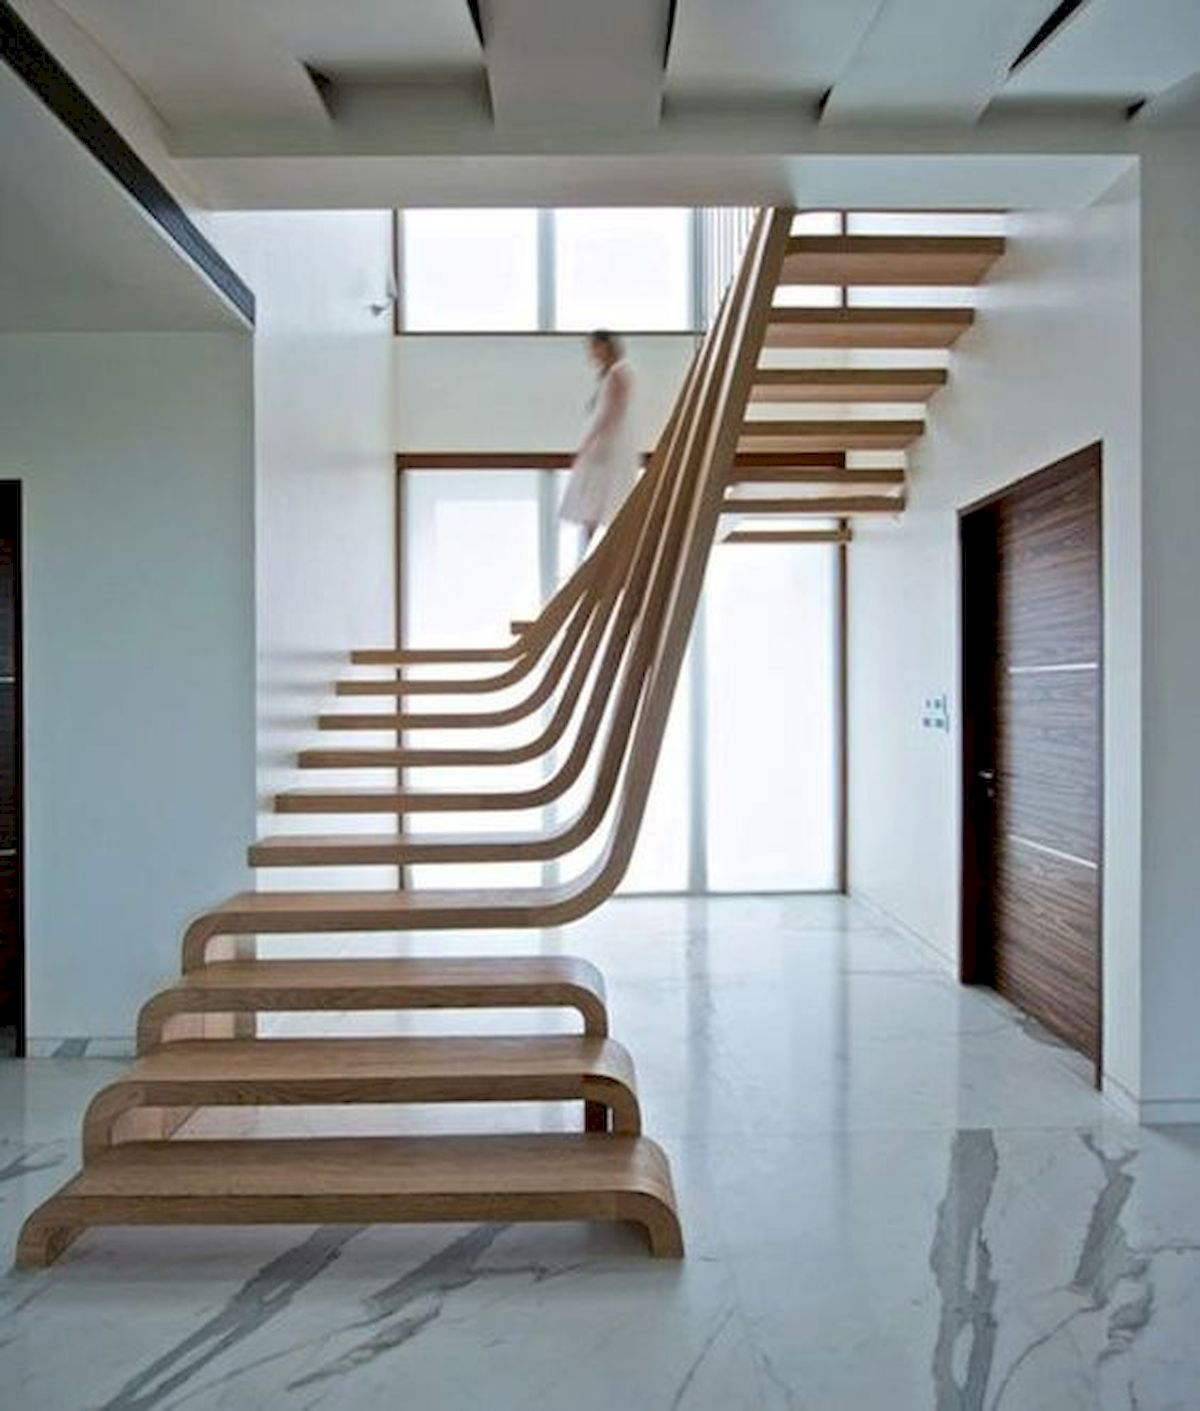 30 Awesome Wooden Stairs Design Ideas For Your Home (15